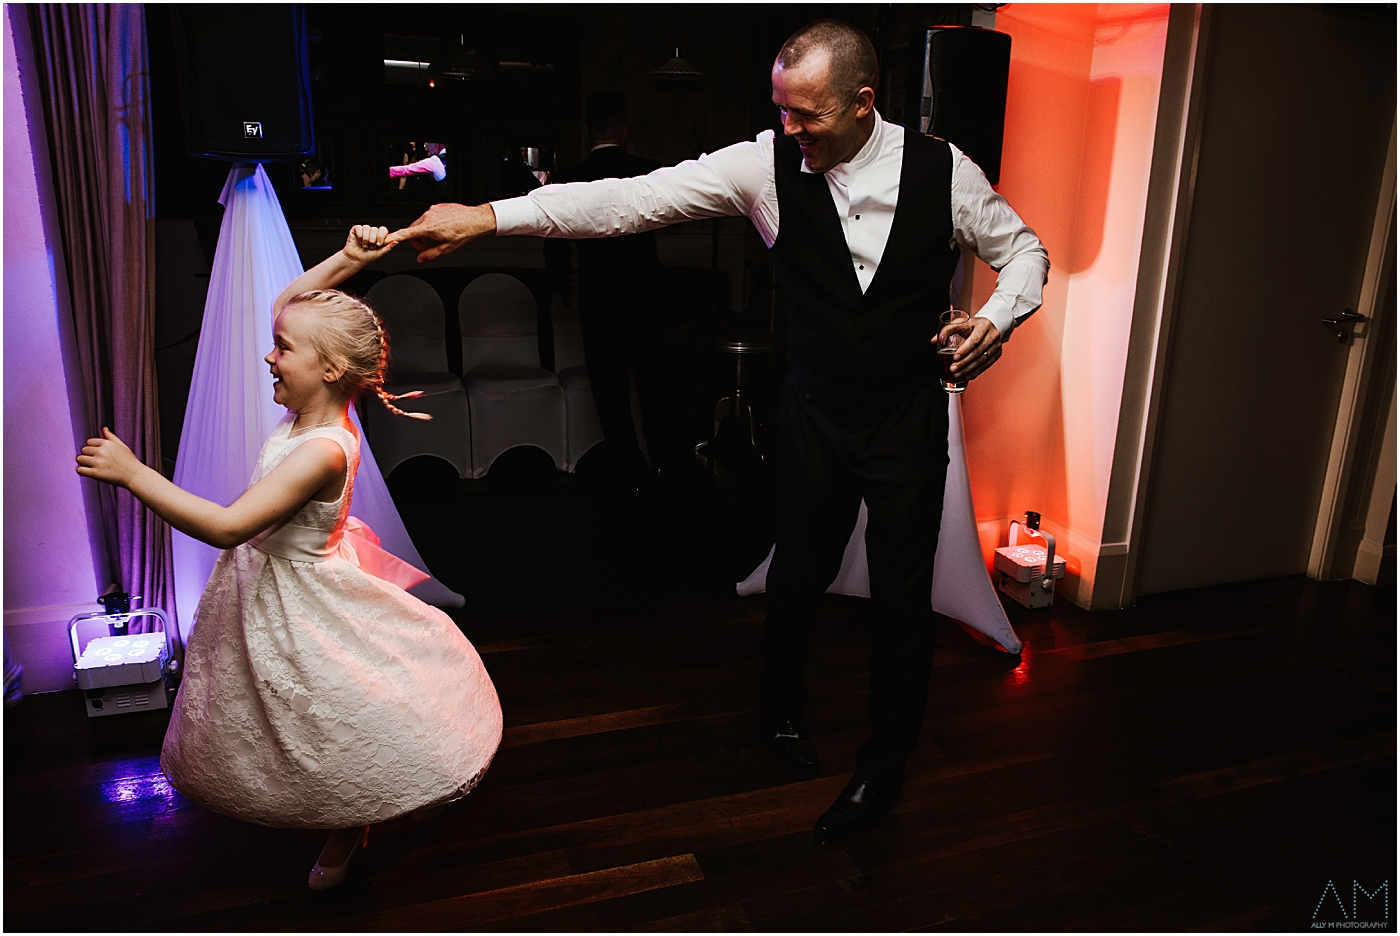 Groom dancing with his girl